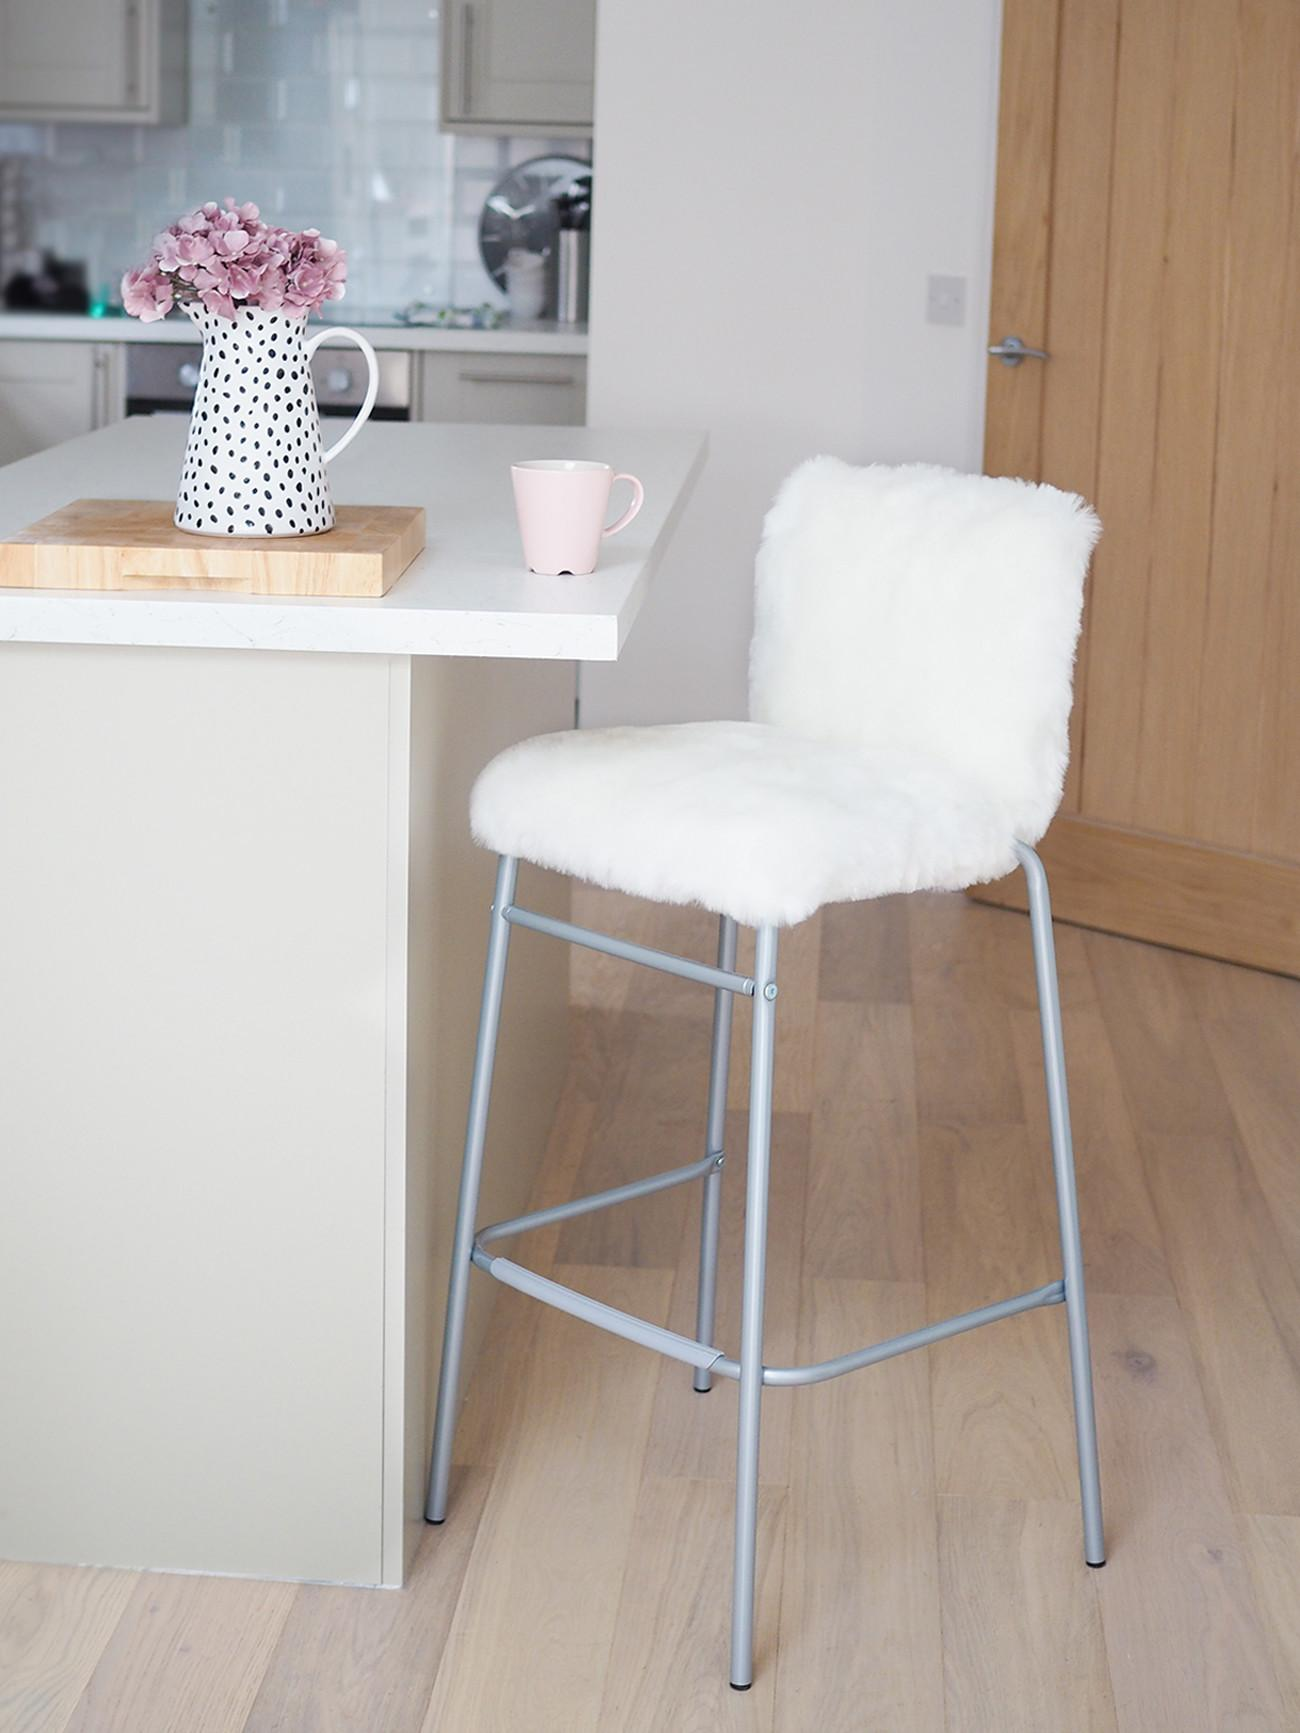 Diy Faux Fur Bar Stool Tutorial Hack Bang Style